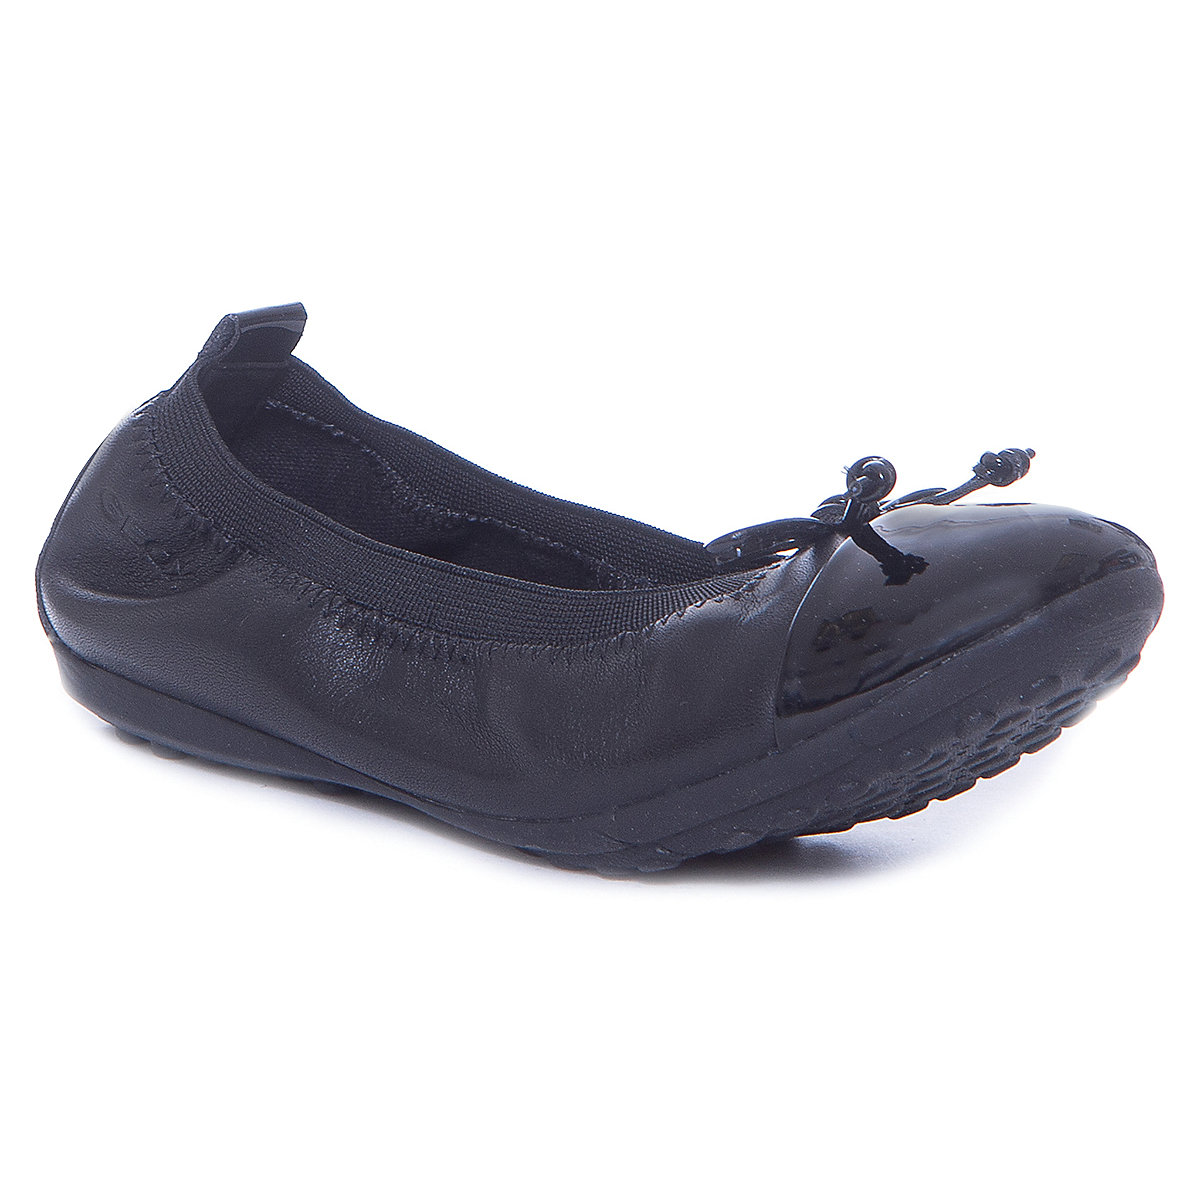 GEOX Leather Shoes 8786606 For girls girl children shoes Leather MTpromo